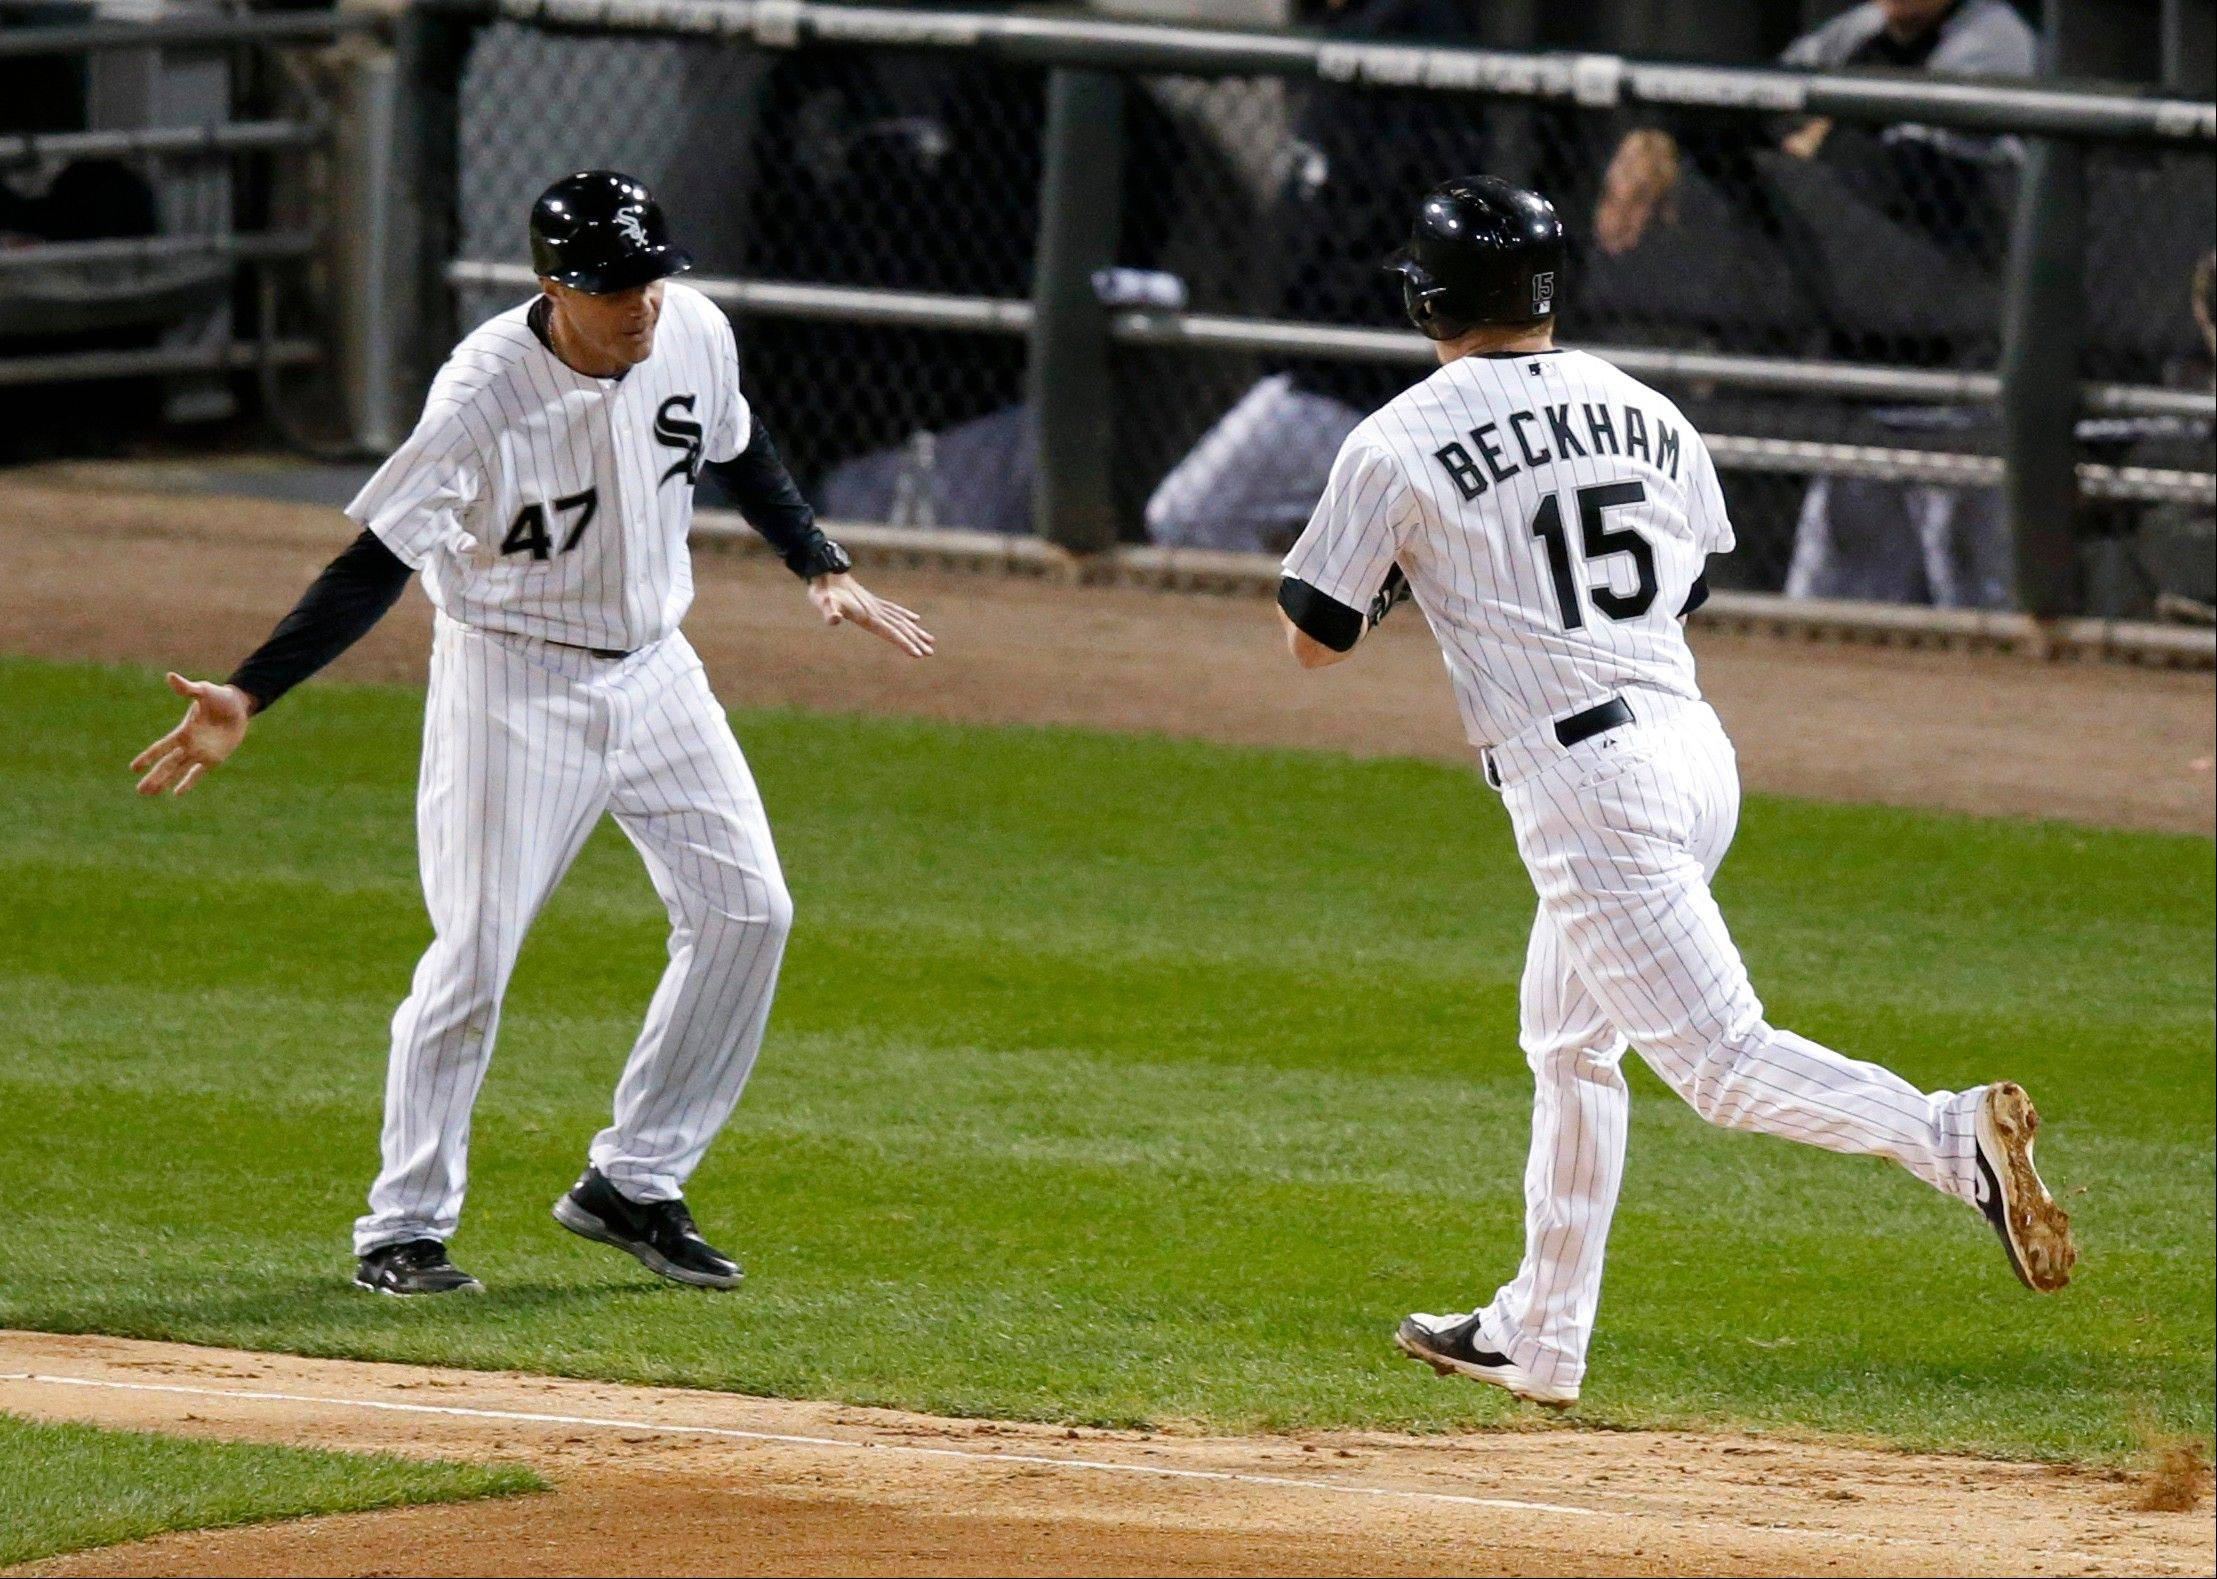 White Sox third base coach Joe McEwing (47) greets Gordon Beckham at third after Beckham�s home run off Kansas City Royals starting pitcher James Shields during the sixth inning of a baseball game Friday, Sept. 27, 2013, in Chicago. (AP Photo/Charles Rex Arbogast)